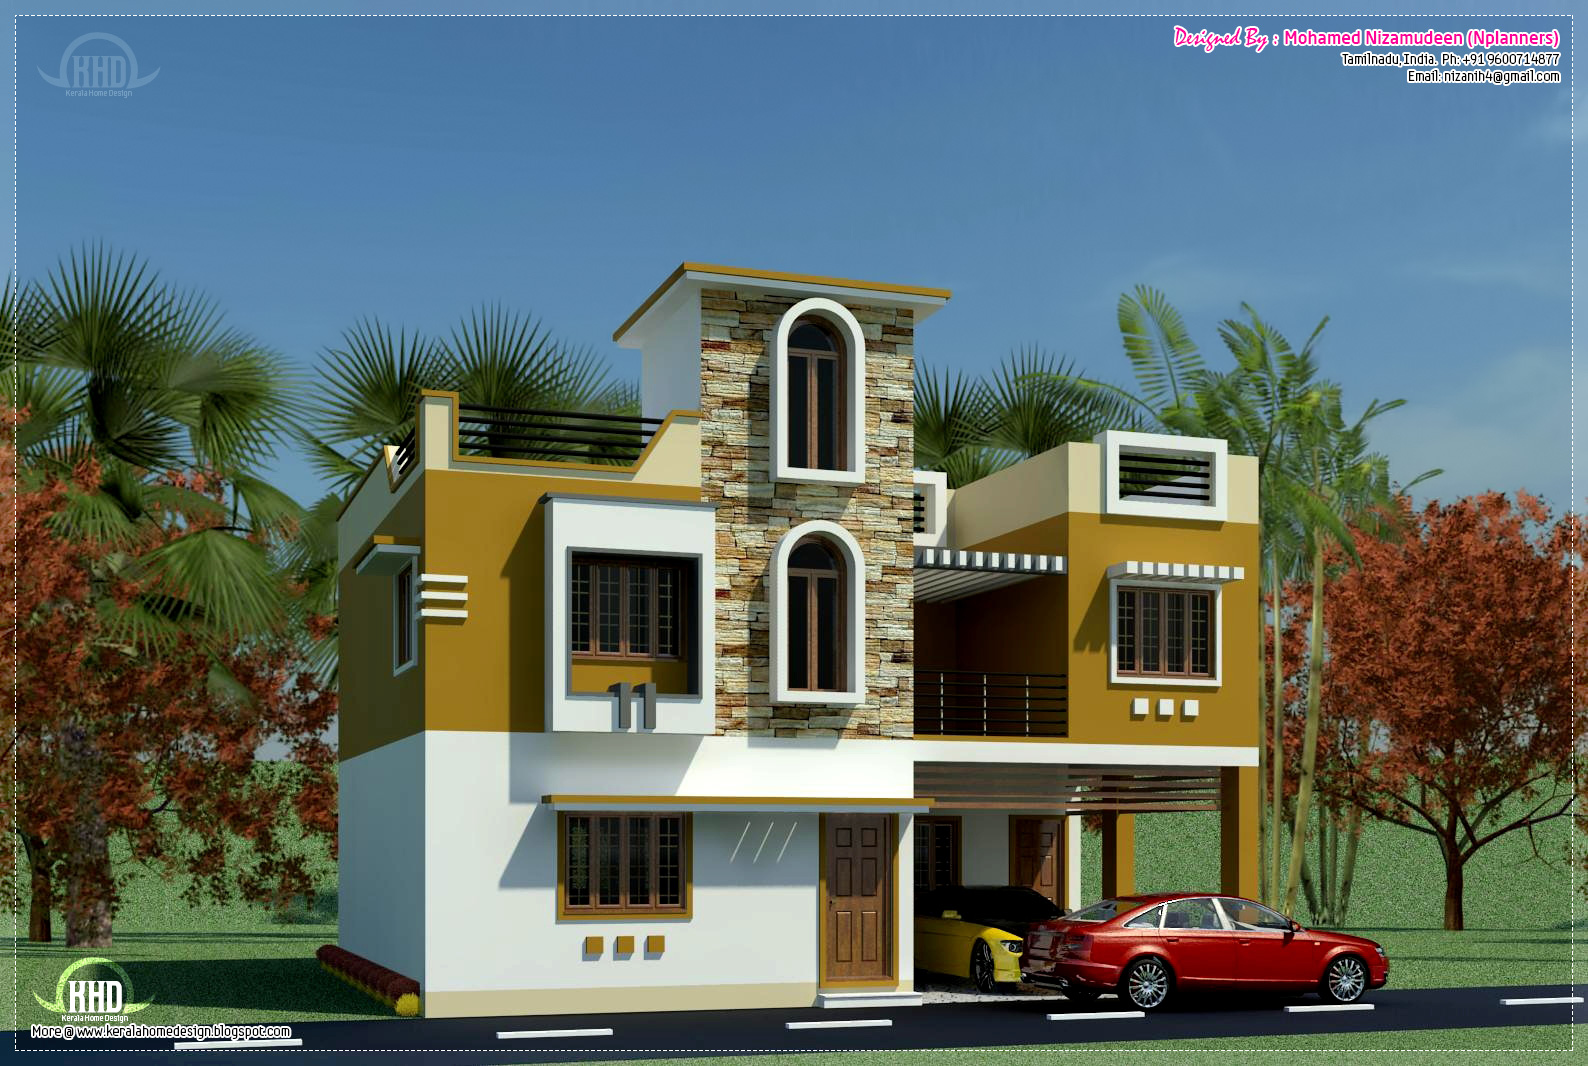 Indian houses exterior designs - House design